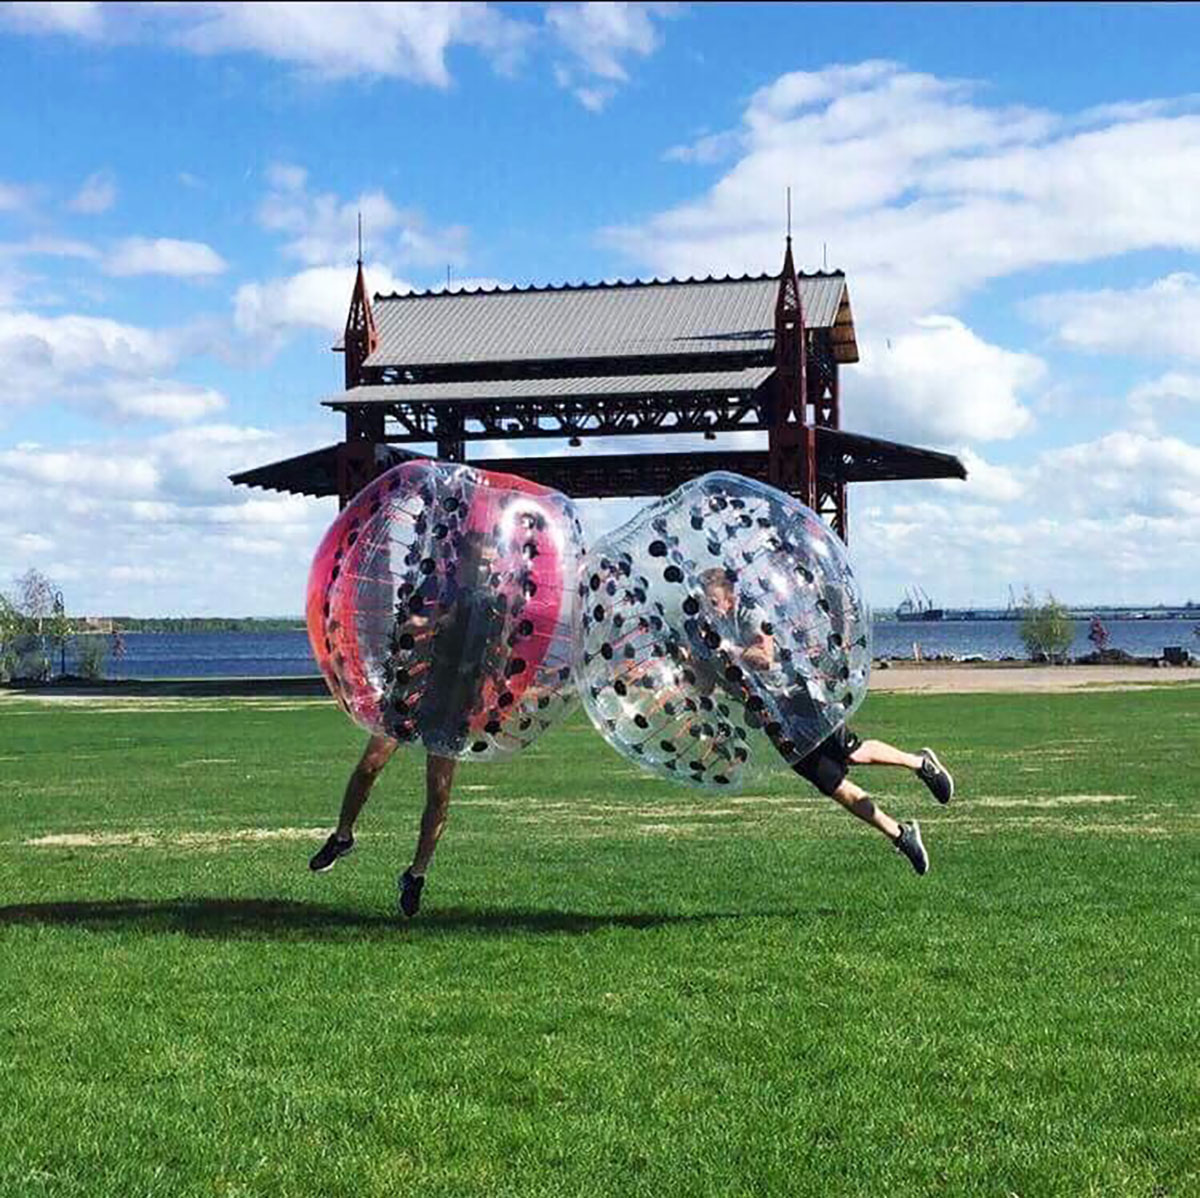 Shaun Petrovich bought a bubble ball business when the opportunity arose through a Facebook post.